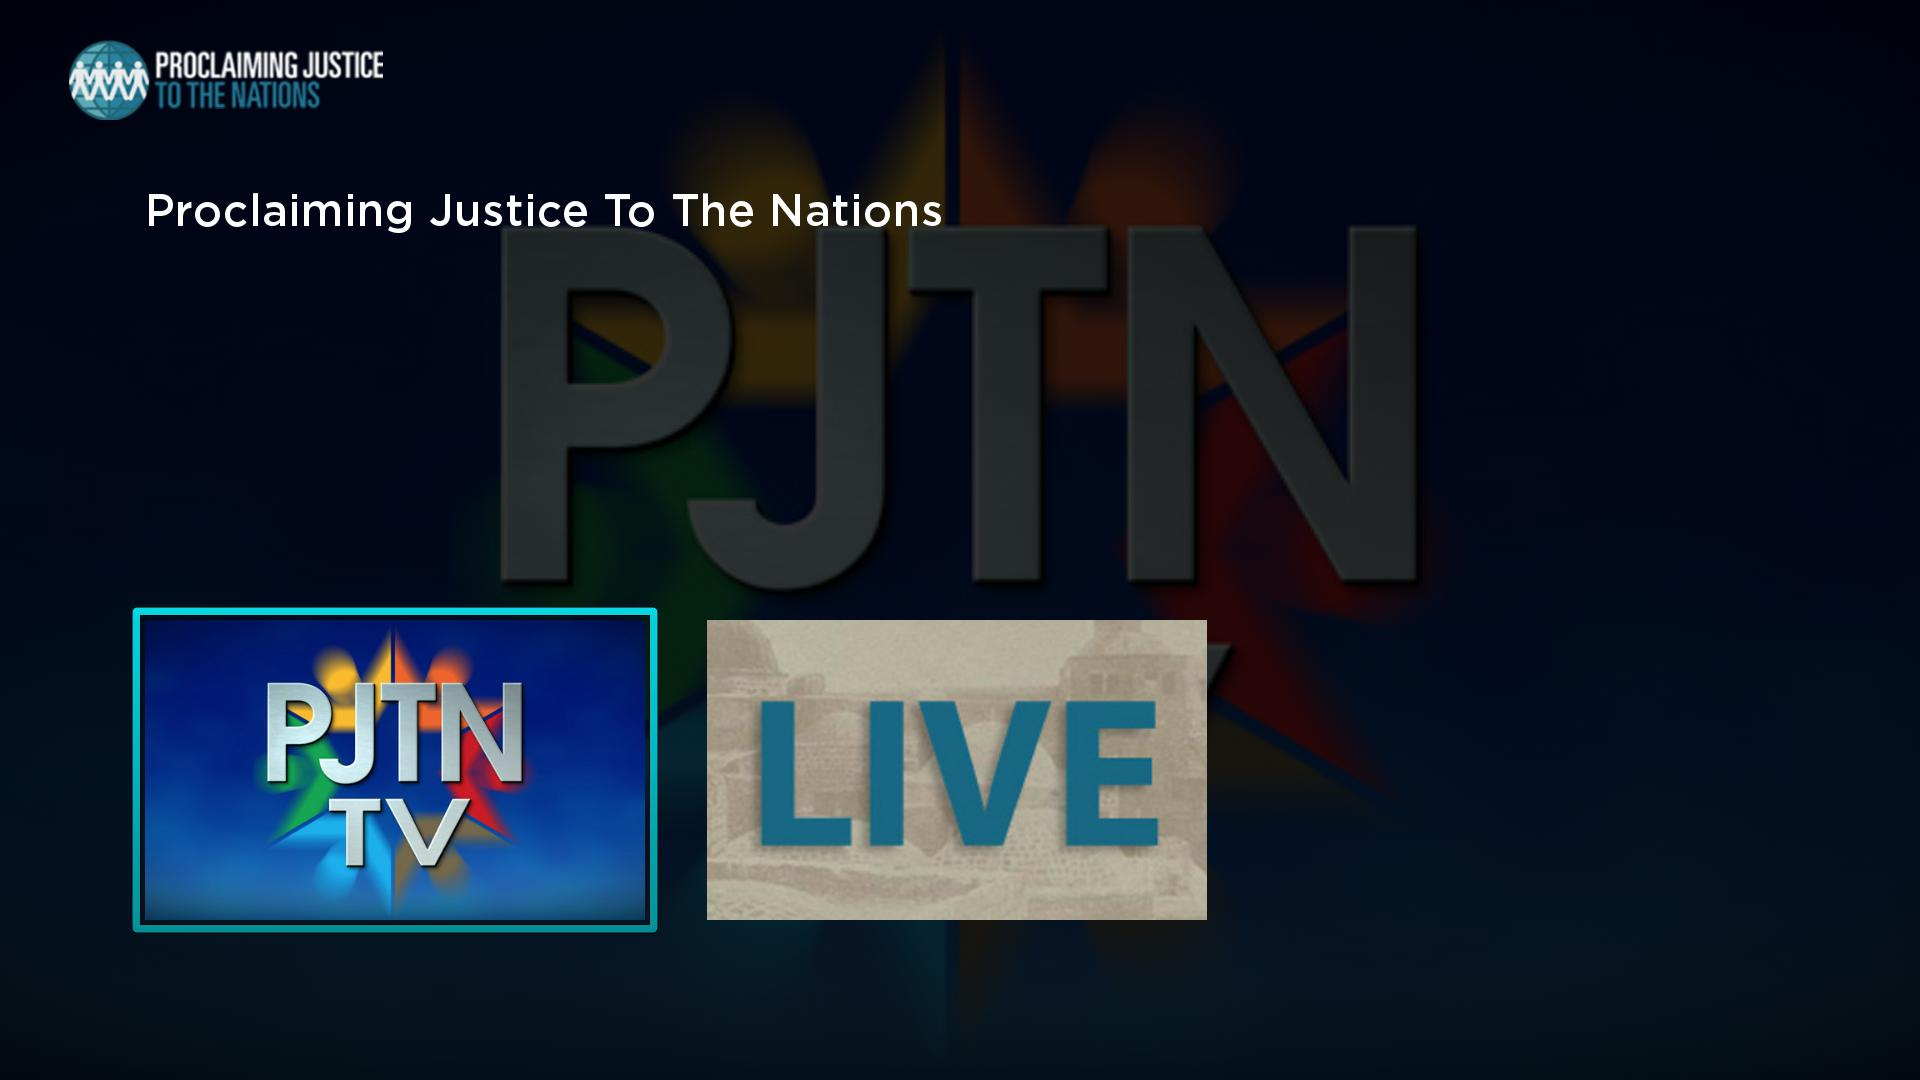 Proclaiming Justice to the Nations Screenshot 001